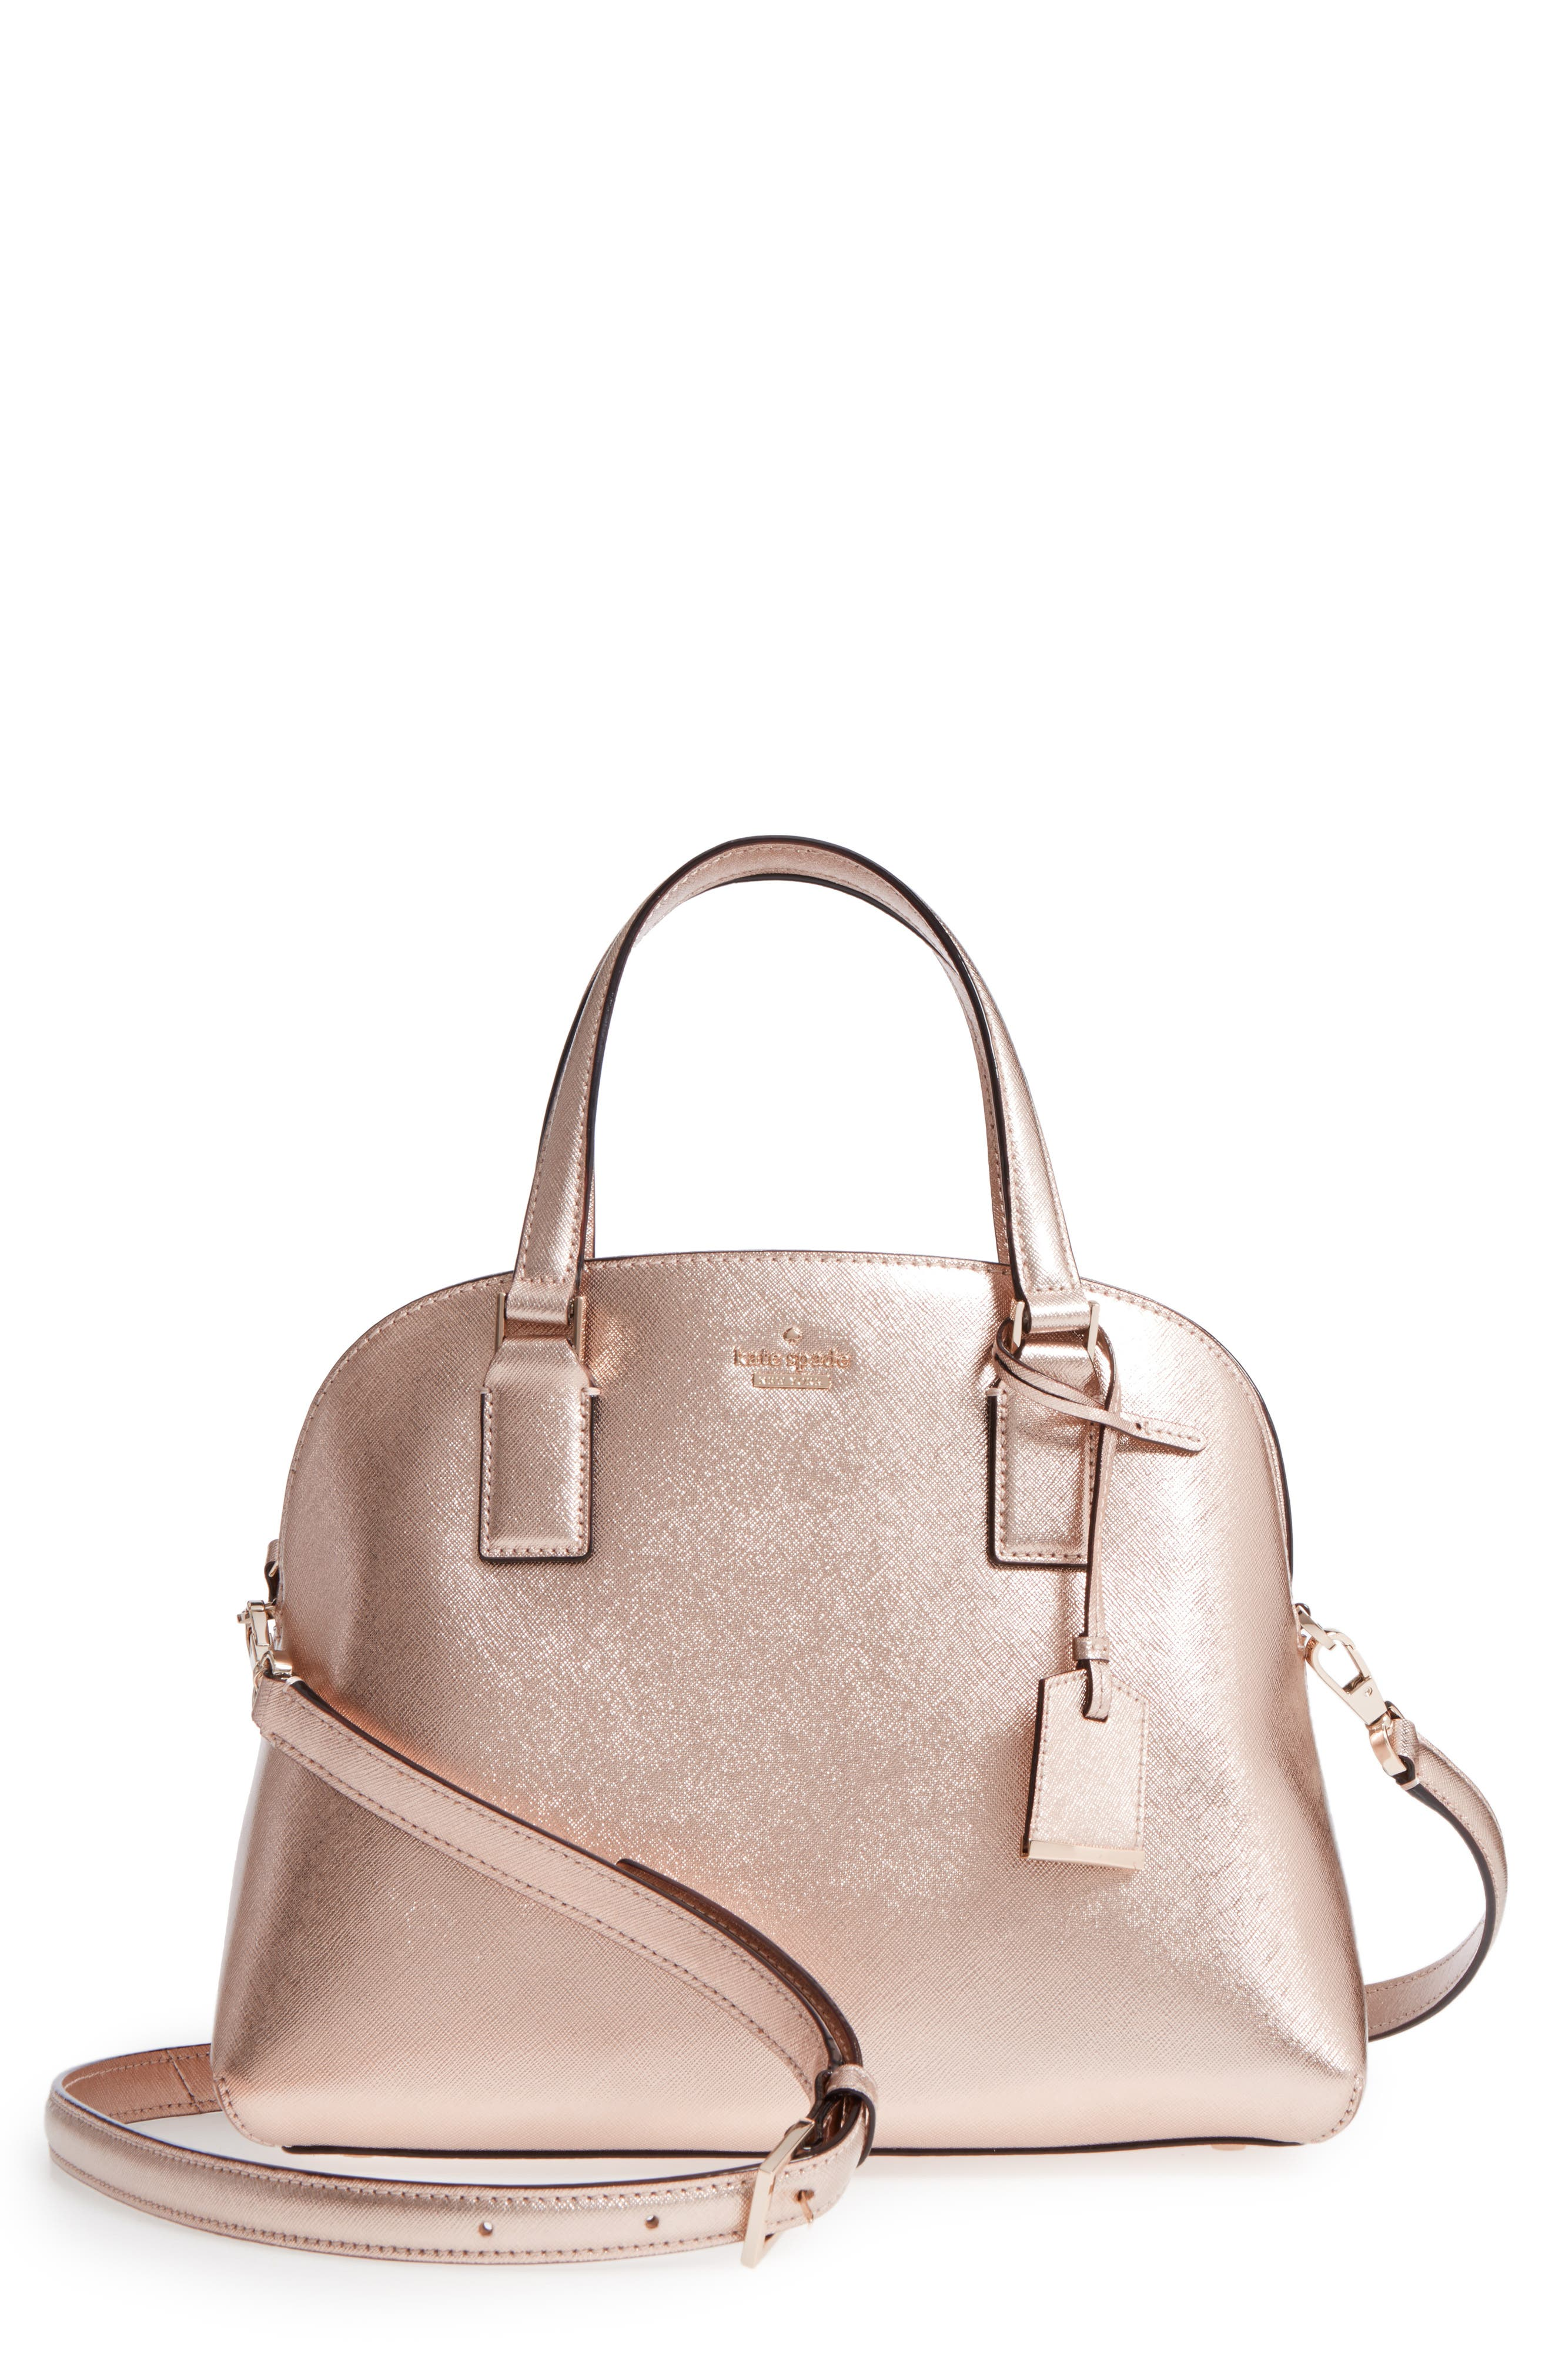 cameron street - lottie leather satchel,                             Main thumbnail 1, color,                             Rose Gold